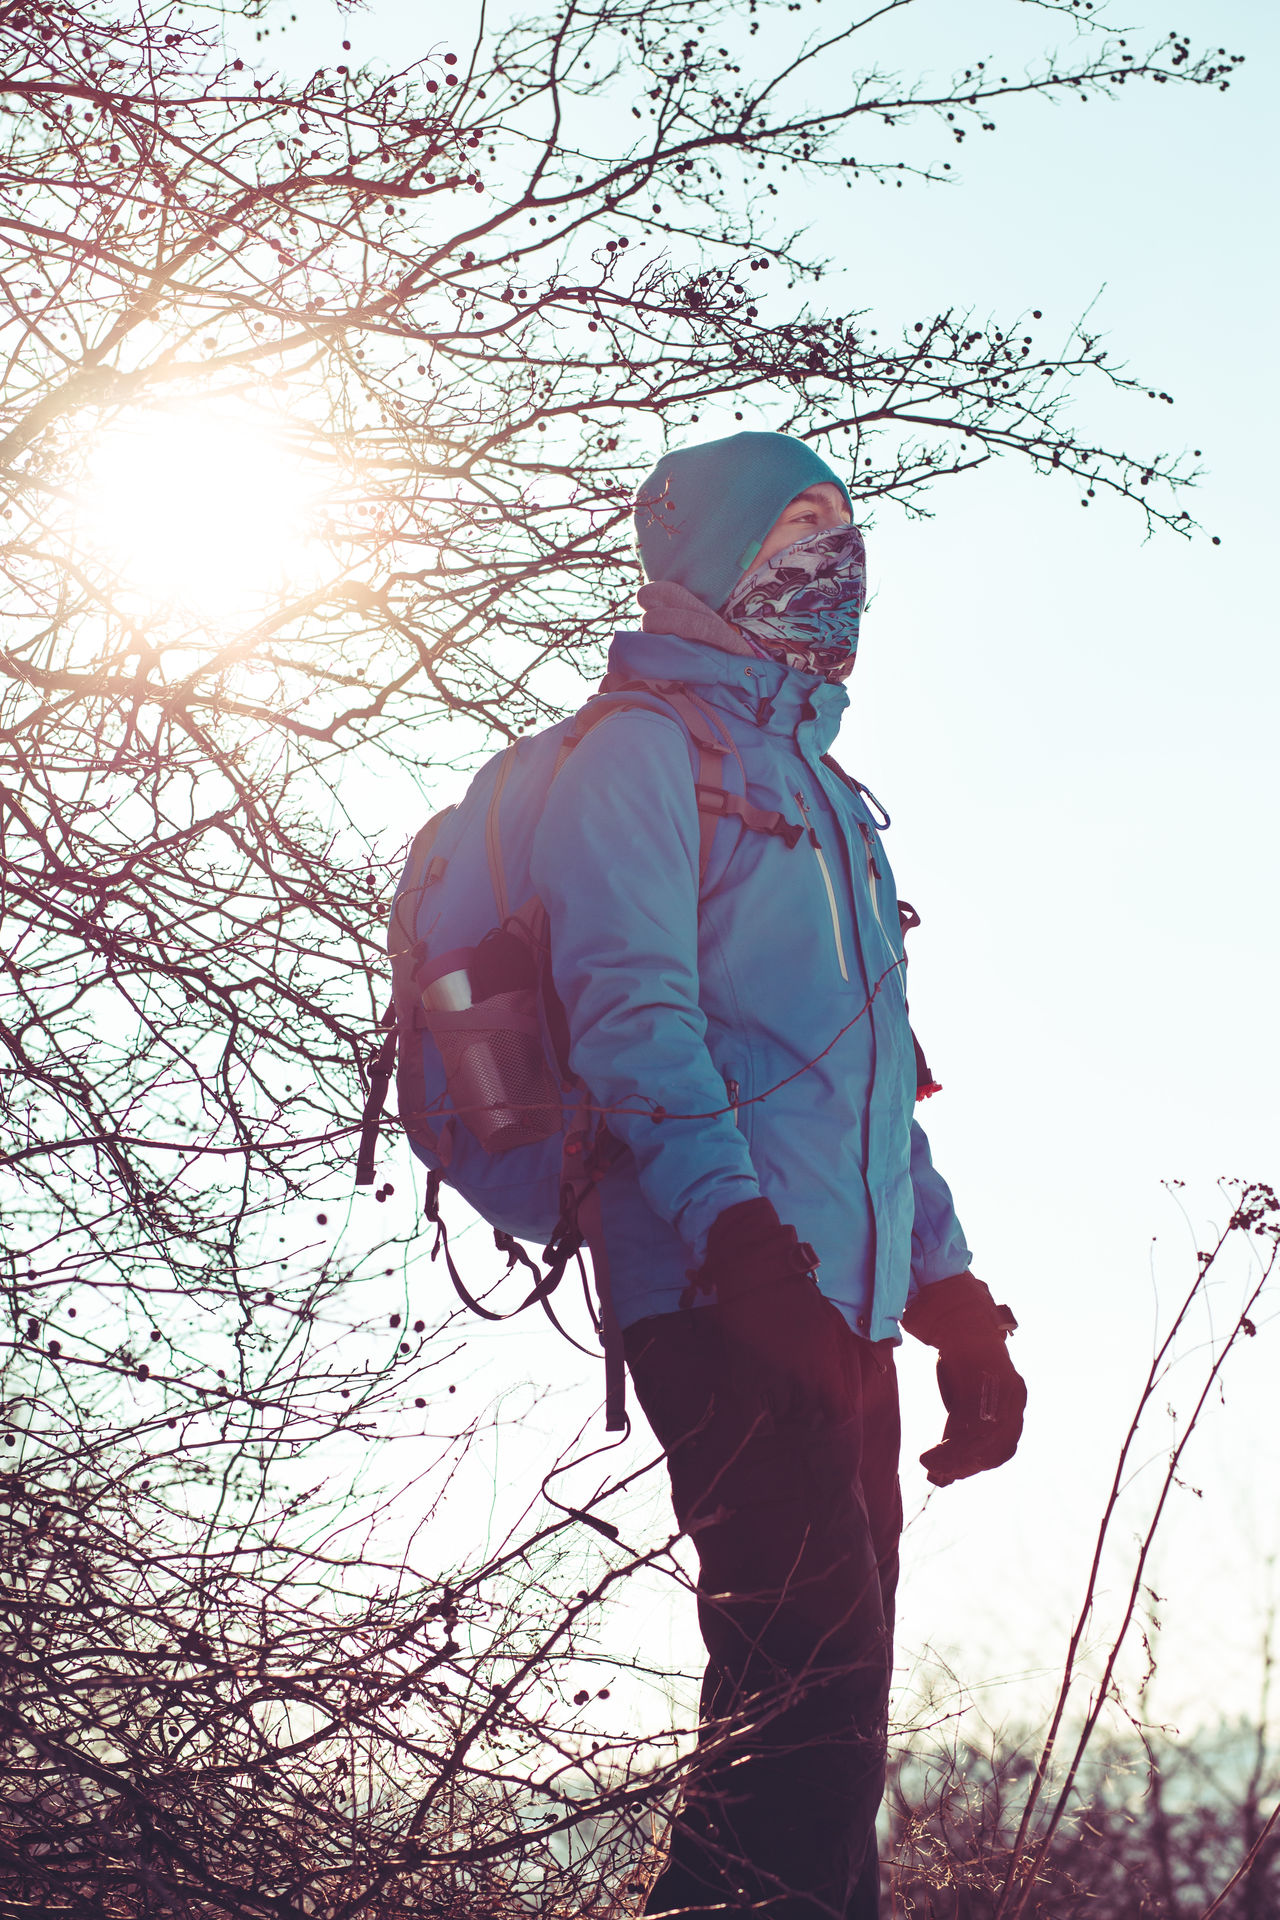 Boy hiking through meadows in the wintertime Active Activity Alone Backpack Bandana Boy Cold Day Hike Hiker Journey Lifestyles Meadow Nature Outdoors People Person Snow Teenager Trip Vacations Vertical Winter Wintertime Young